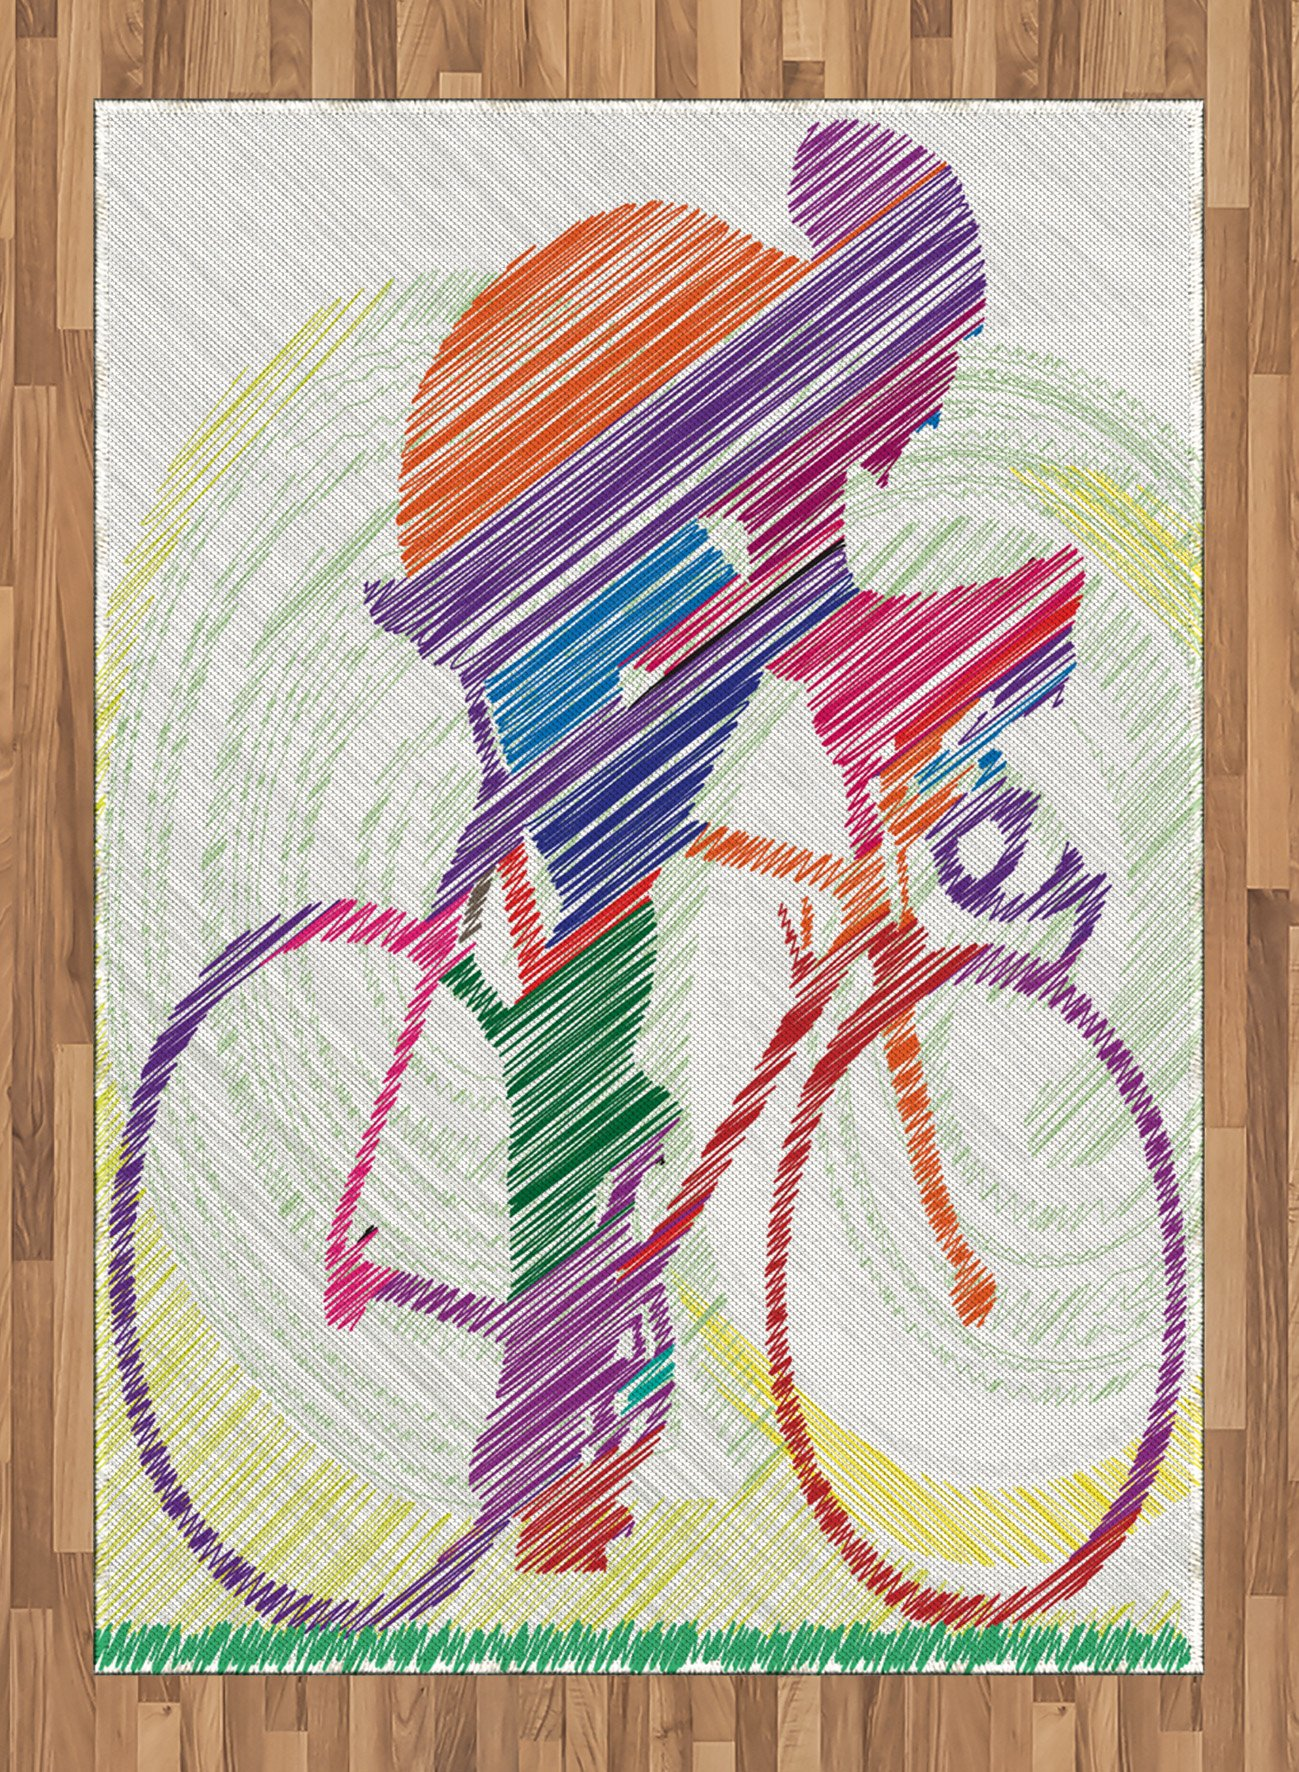 Modern Decor Area Rug by Ambesonne, Sketch Hand Drawn Image of a Cycling Man on a Bike with Sun Grass Artwork, Flat Woven Accent Rug for Living Room Bedroom Dining Room, 5.2 x 7.5 FT, Multicolor